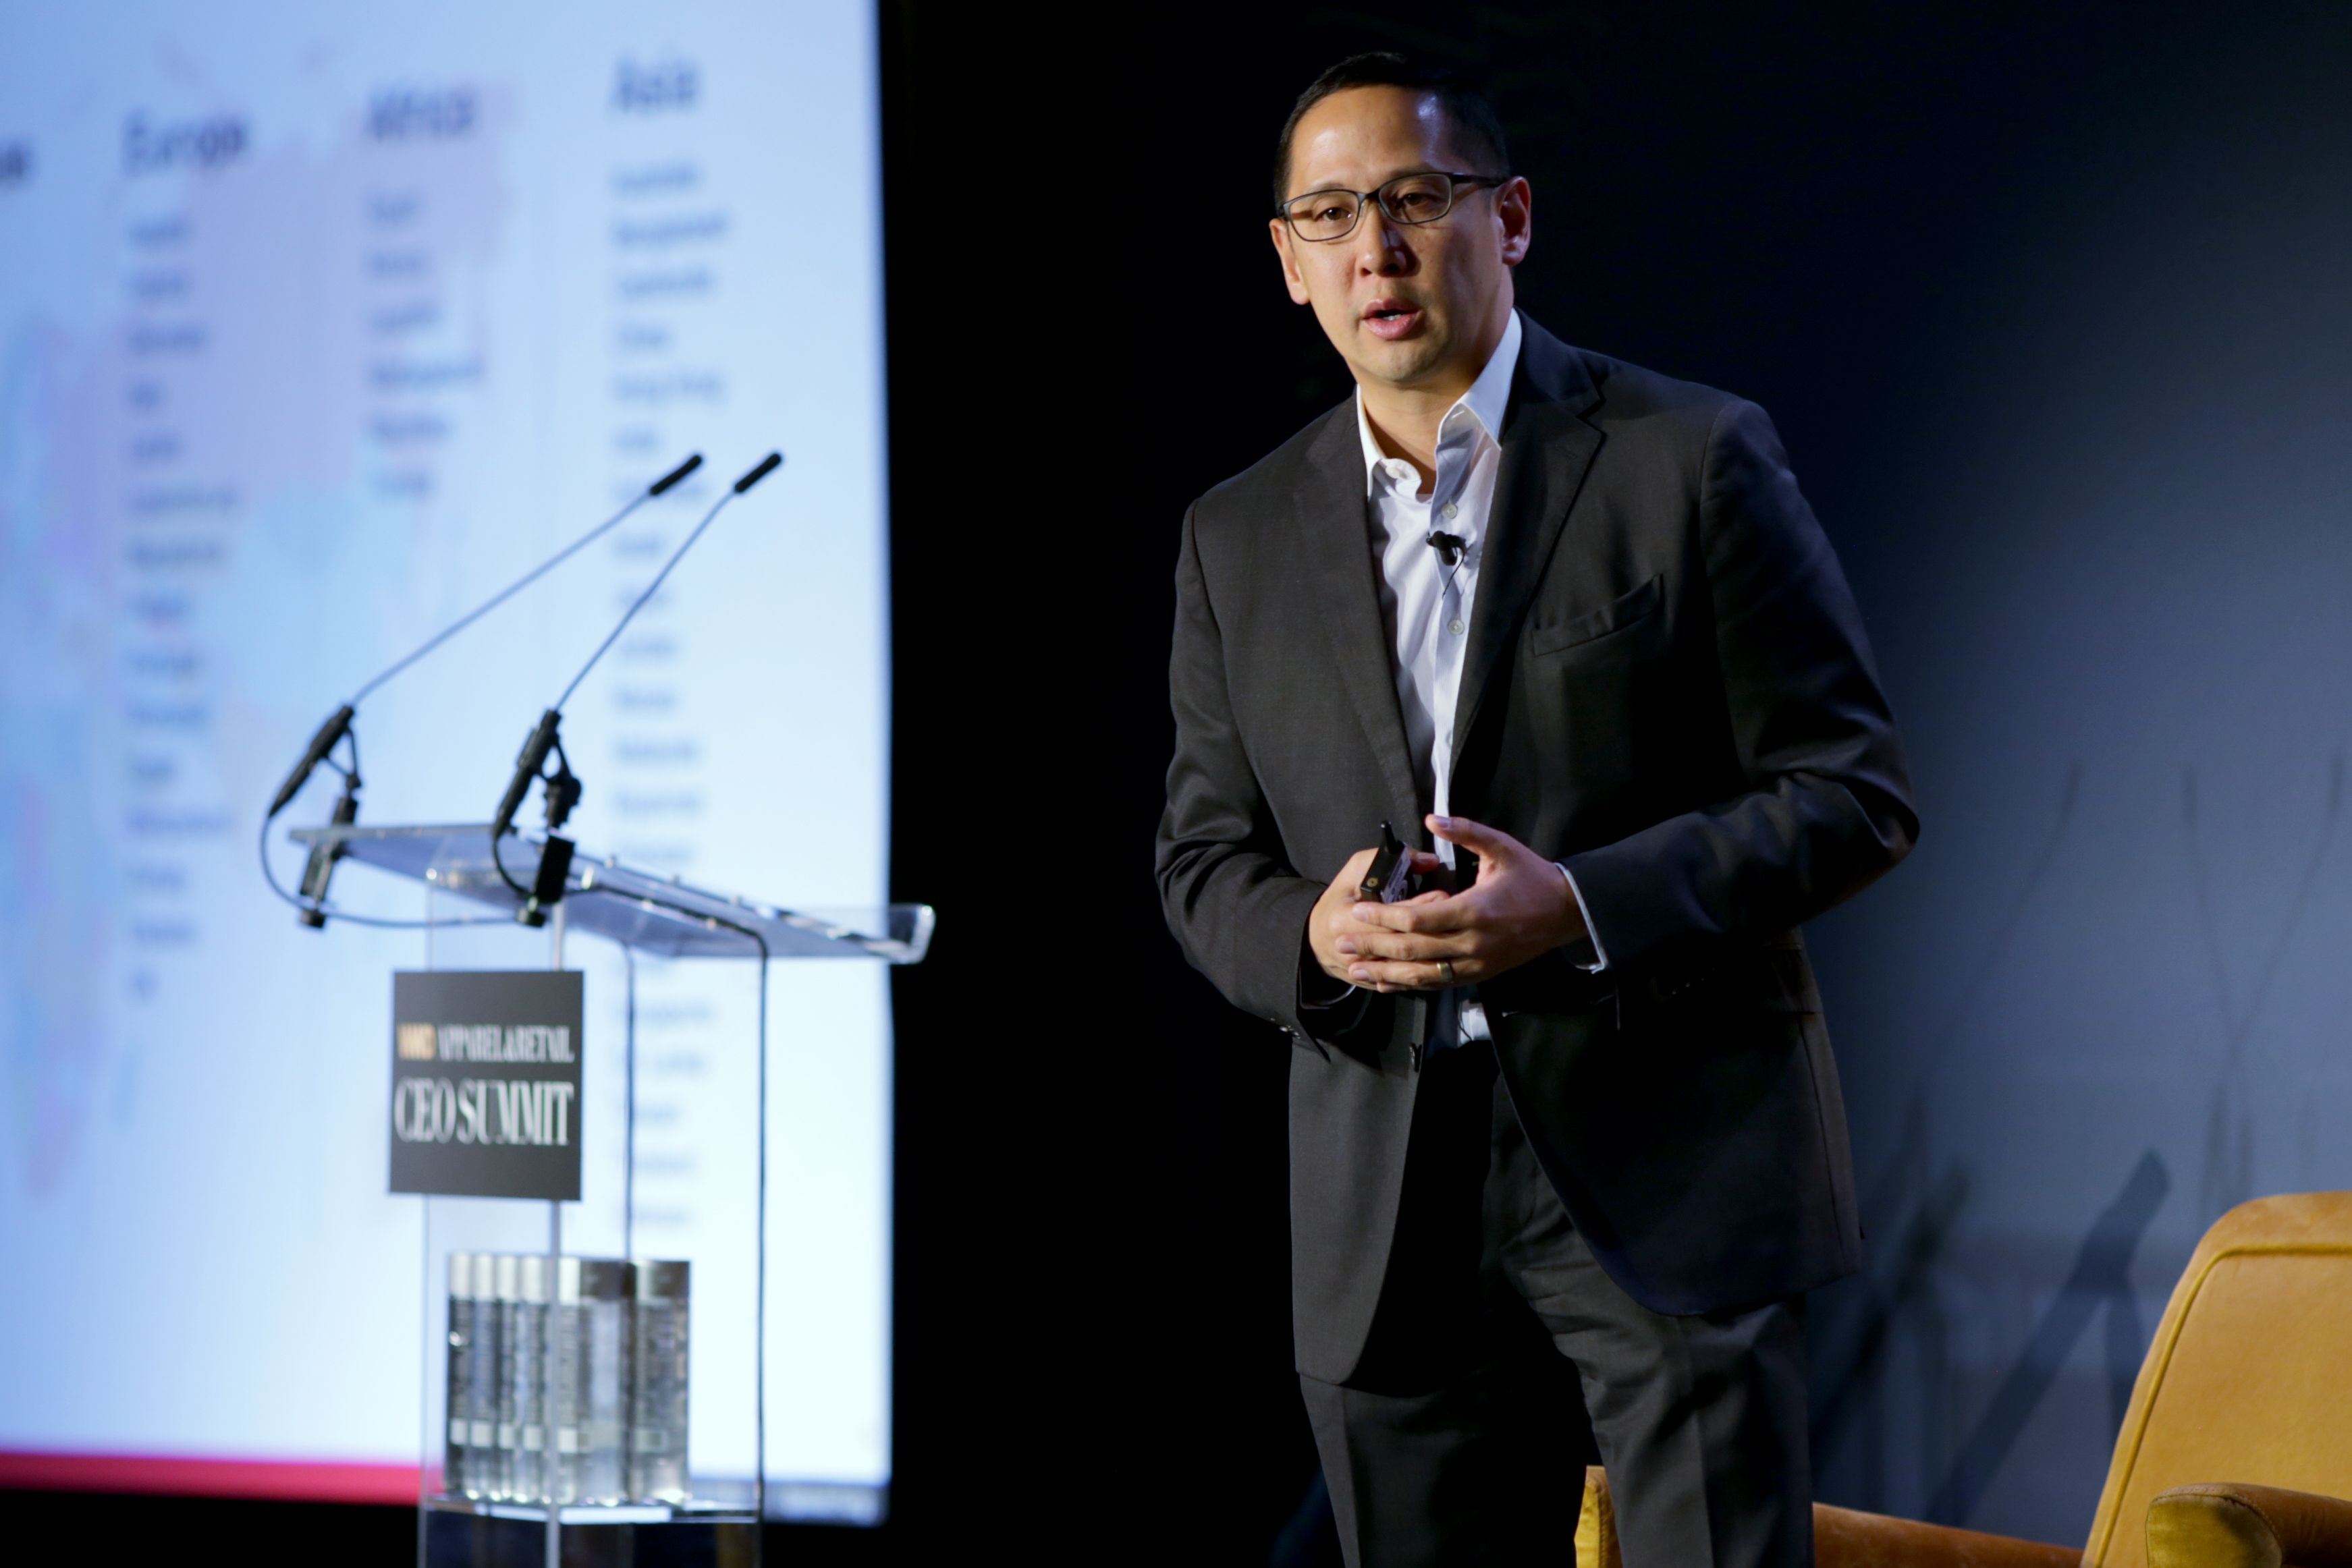 Spencer FungWWD Apparel and Retail CEO Summit, New York, USA - 31 Oct 2018